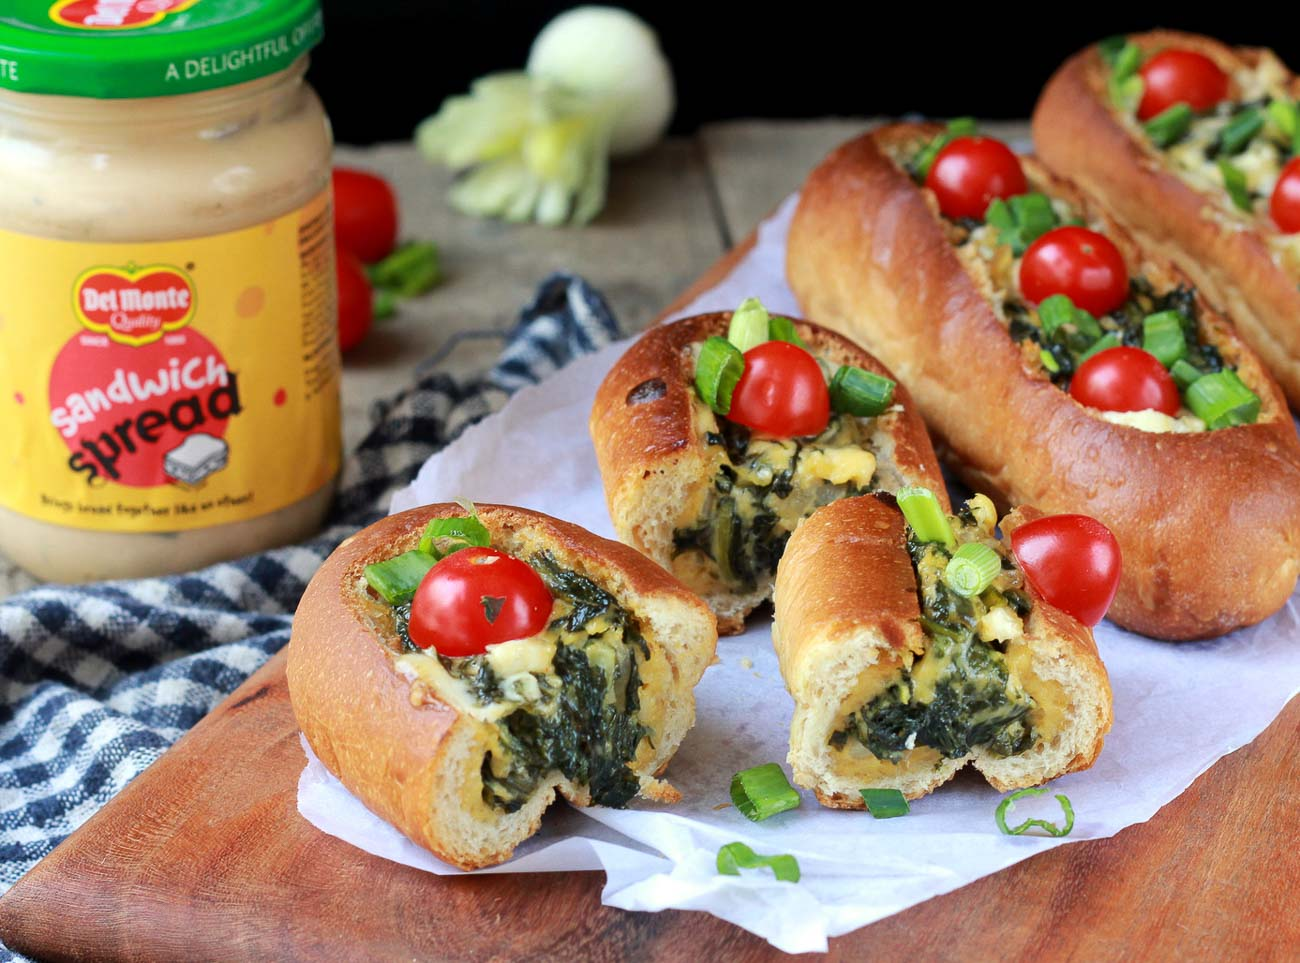 Bread Boats Recipe Filled With Spinach, Eggs And Sandwich Spread